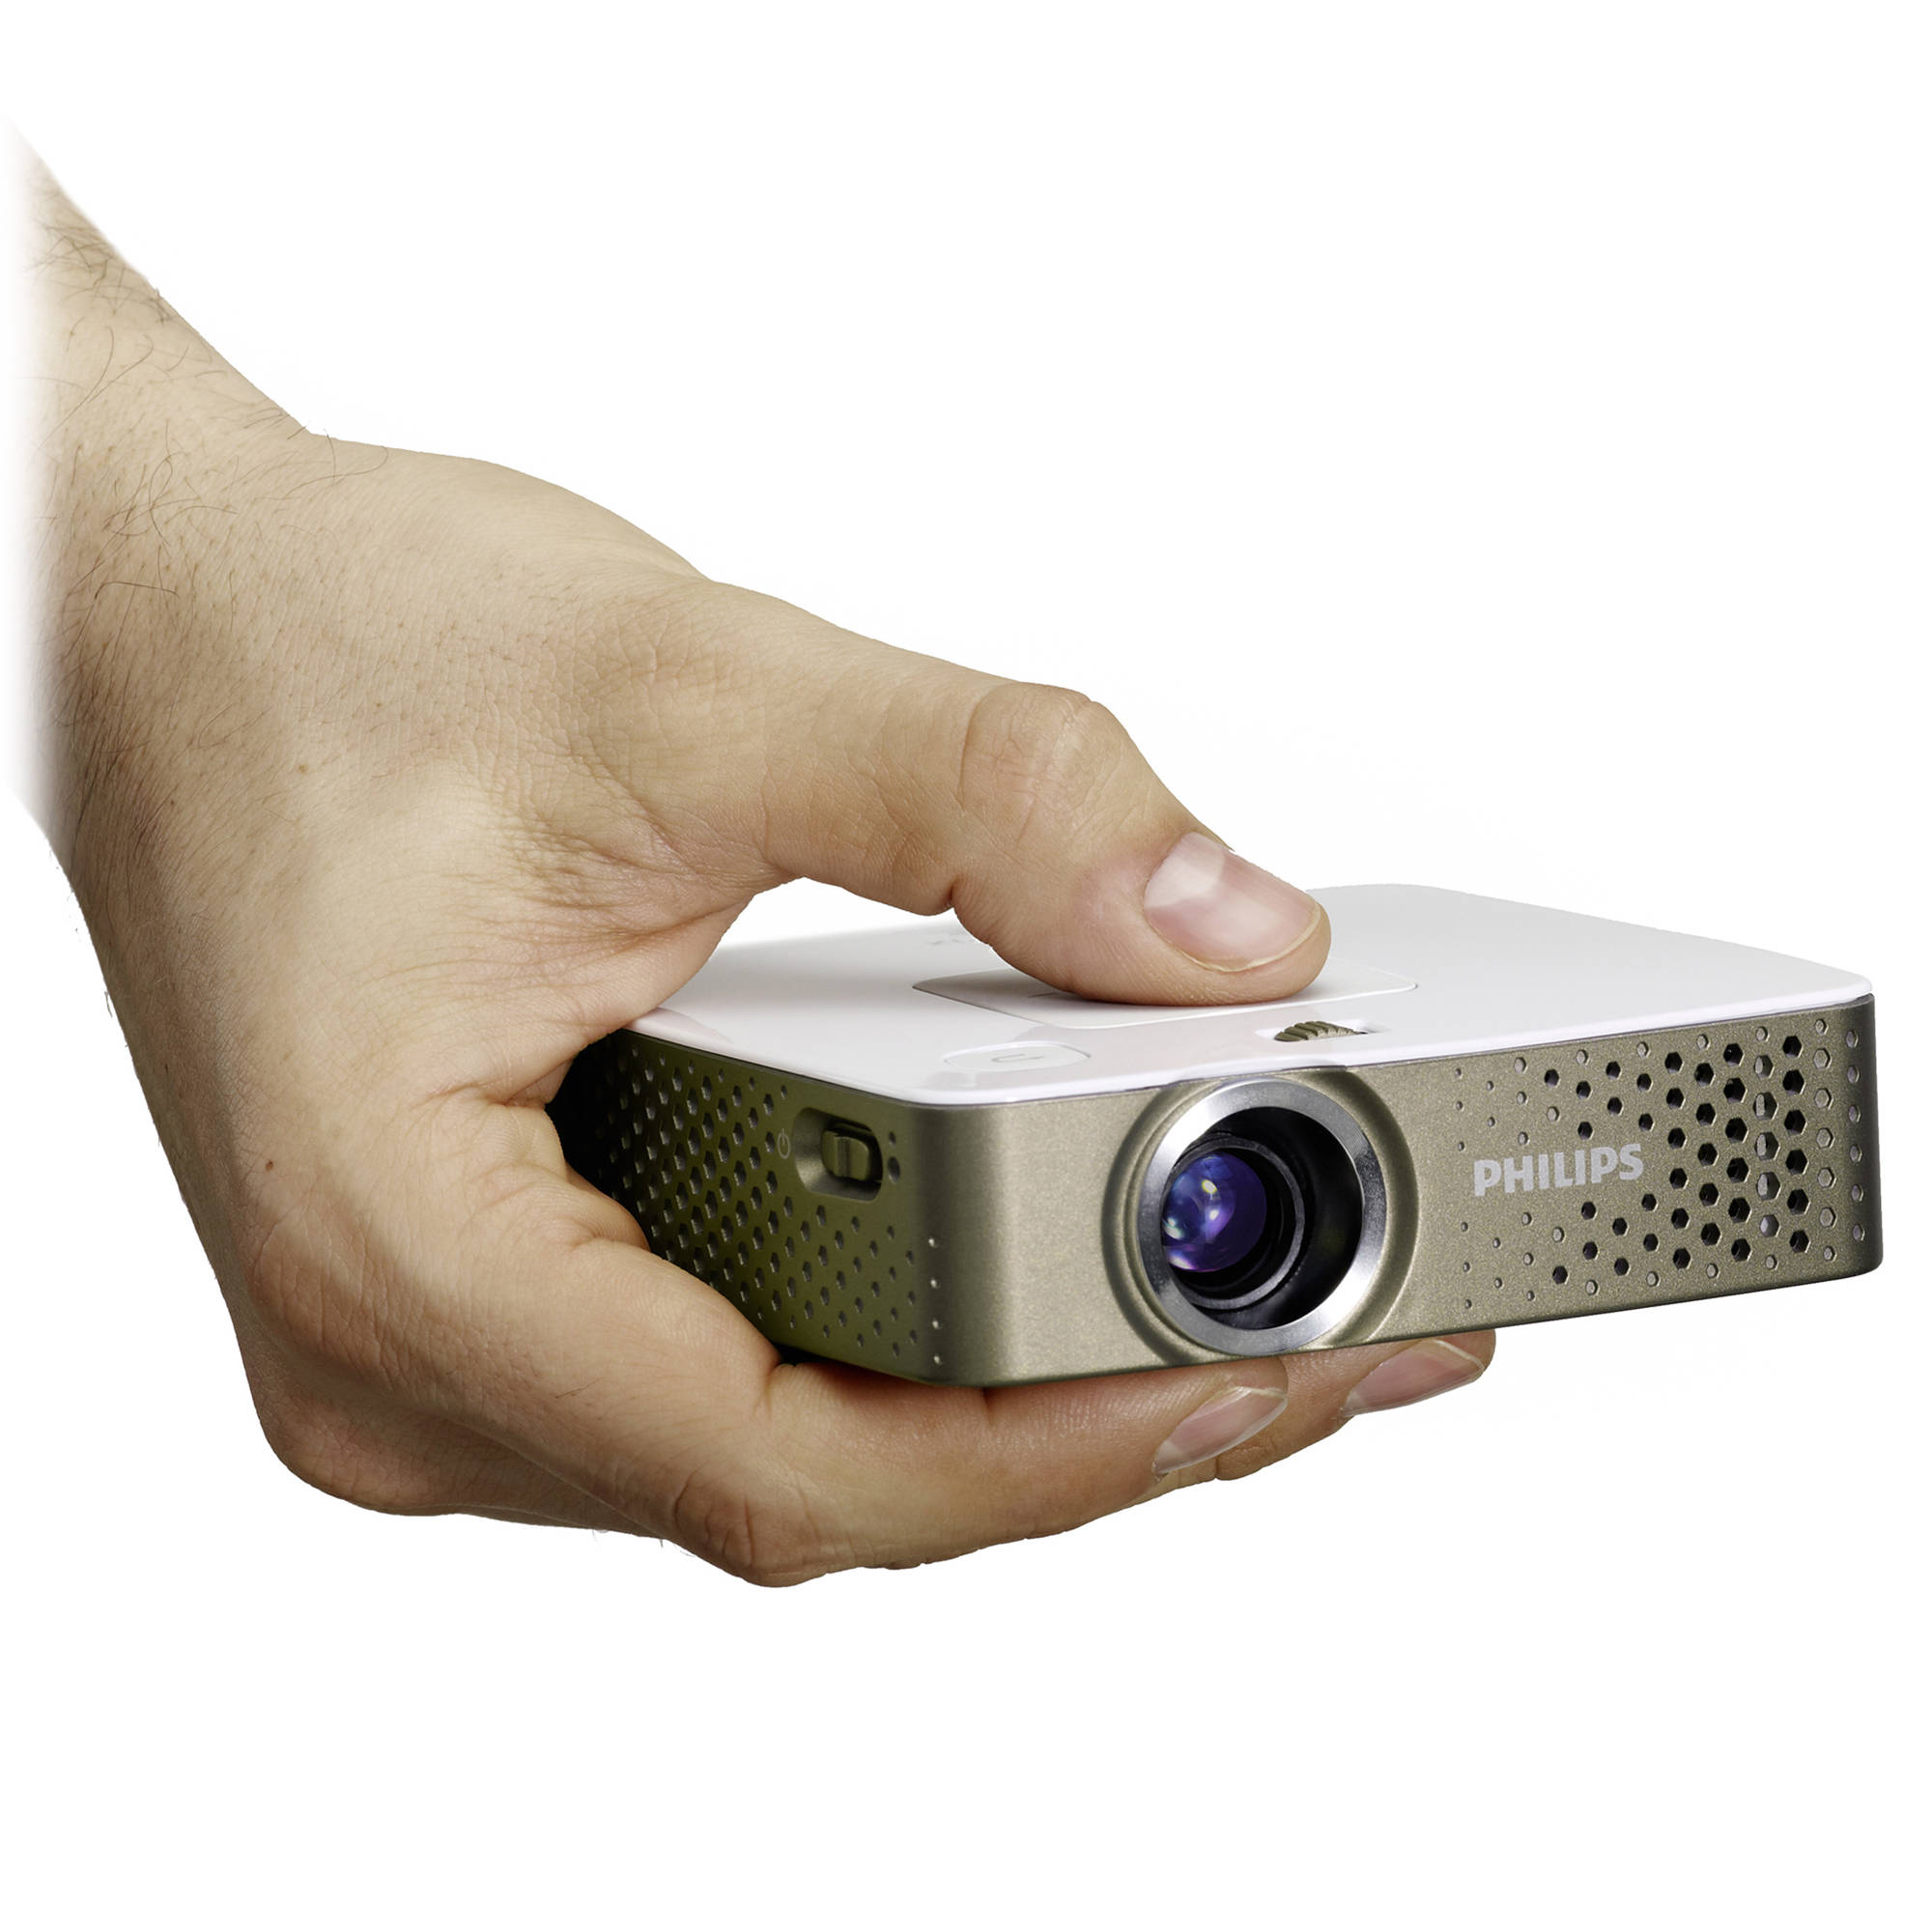 philips picopix ppx3410 f7 100 lumen pocket projector ppx3410